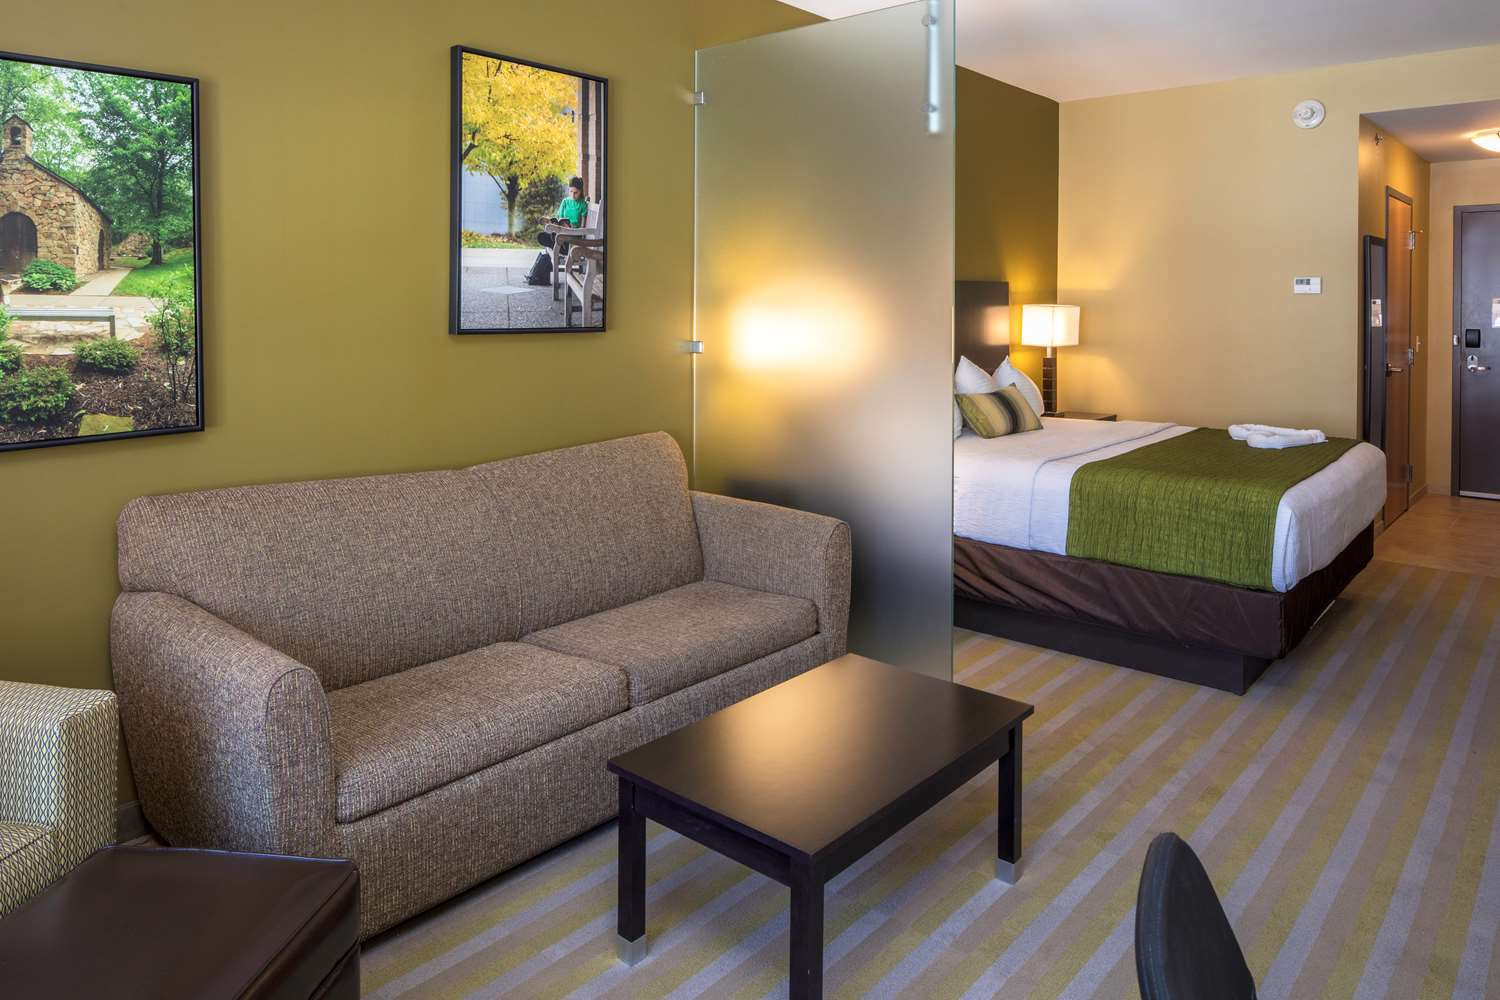 Pet Friendly Hotels Near Steubenville Ohio